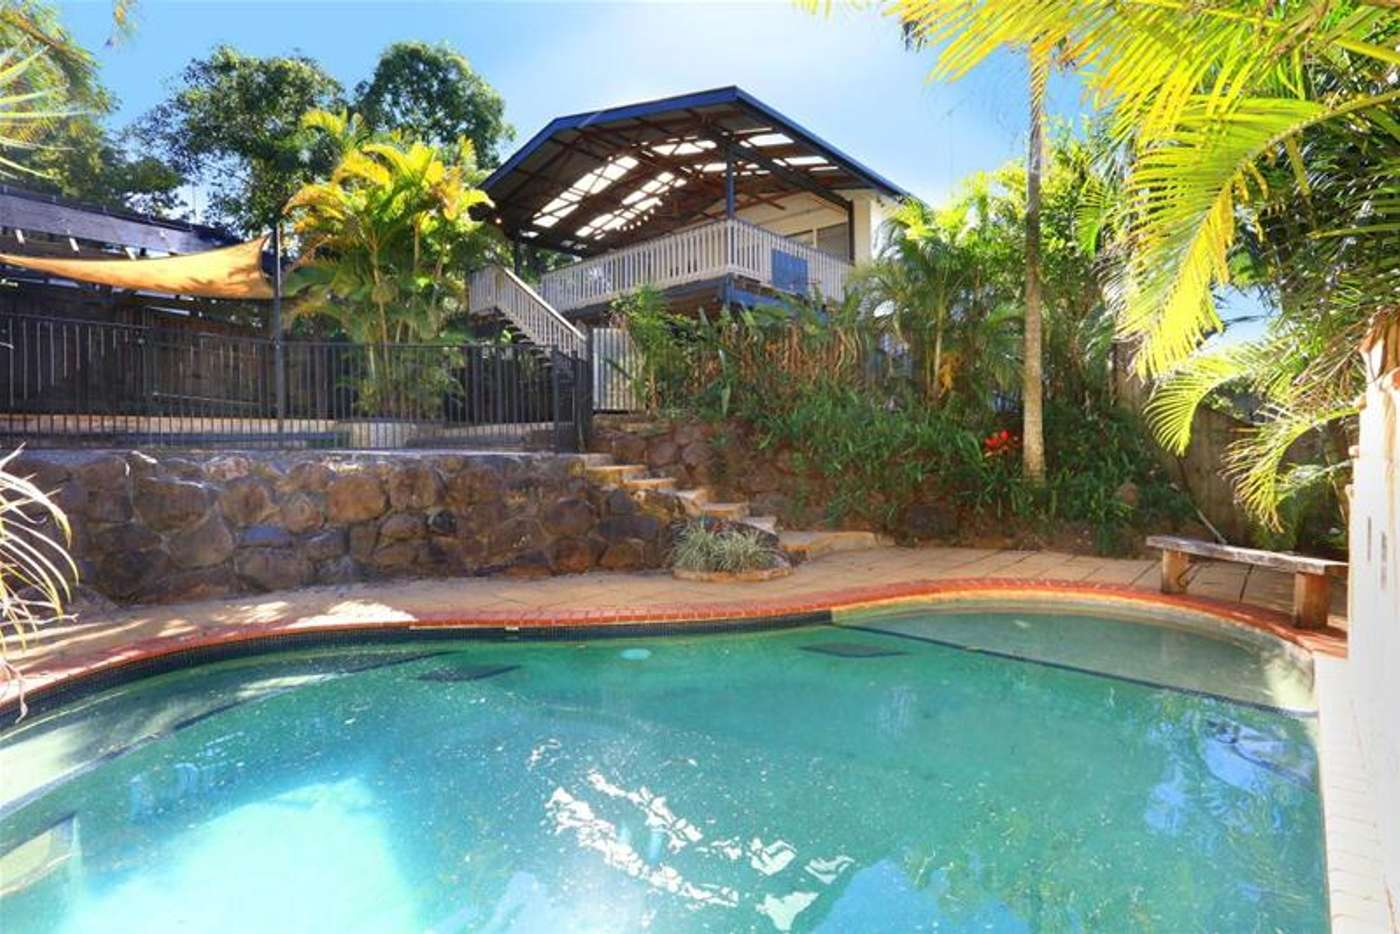 Main view of Homely house listing, 22 The Domain, Nerang QLD 4211